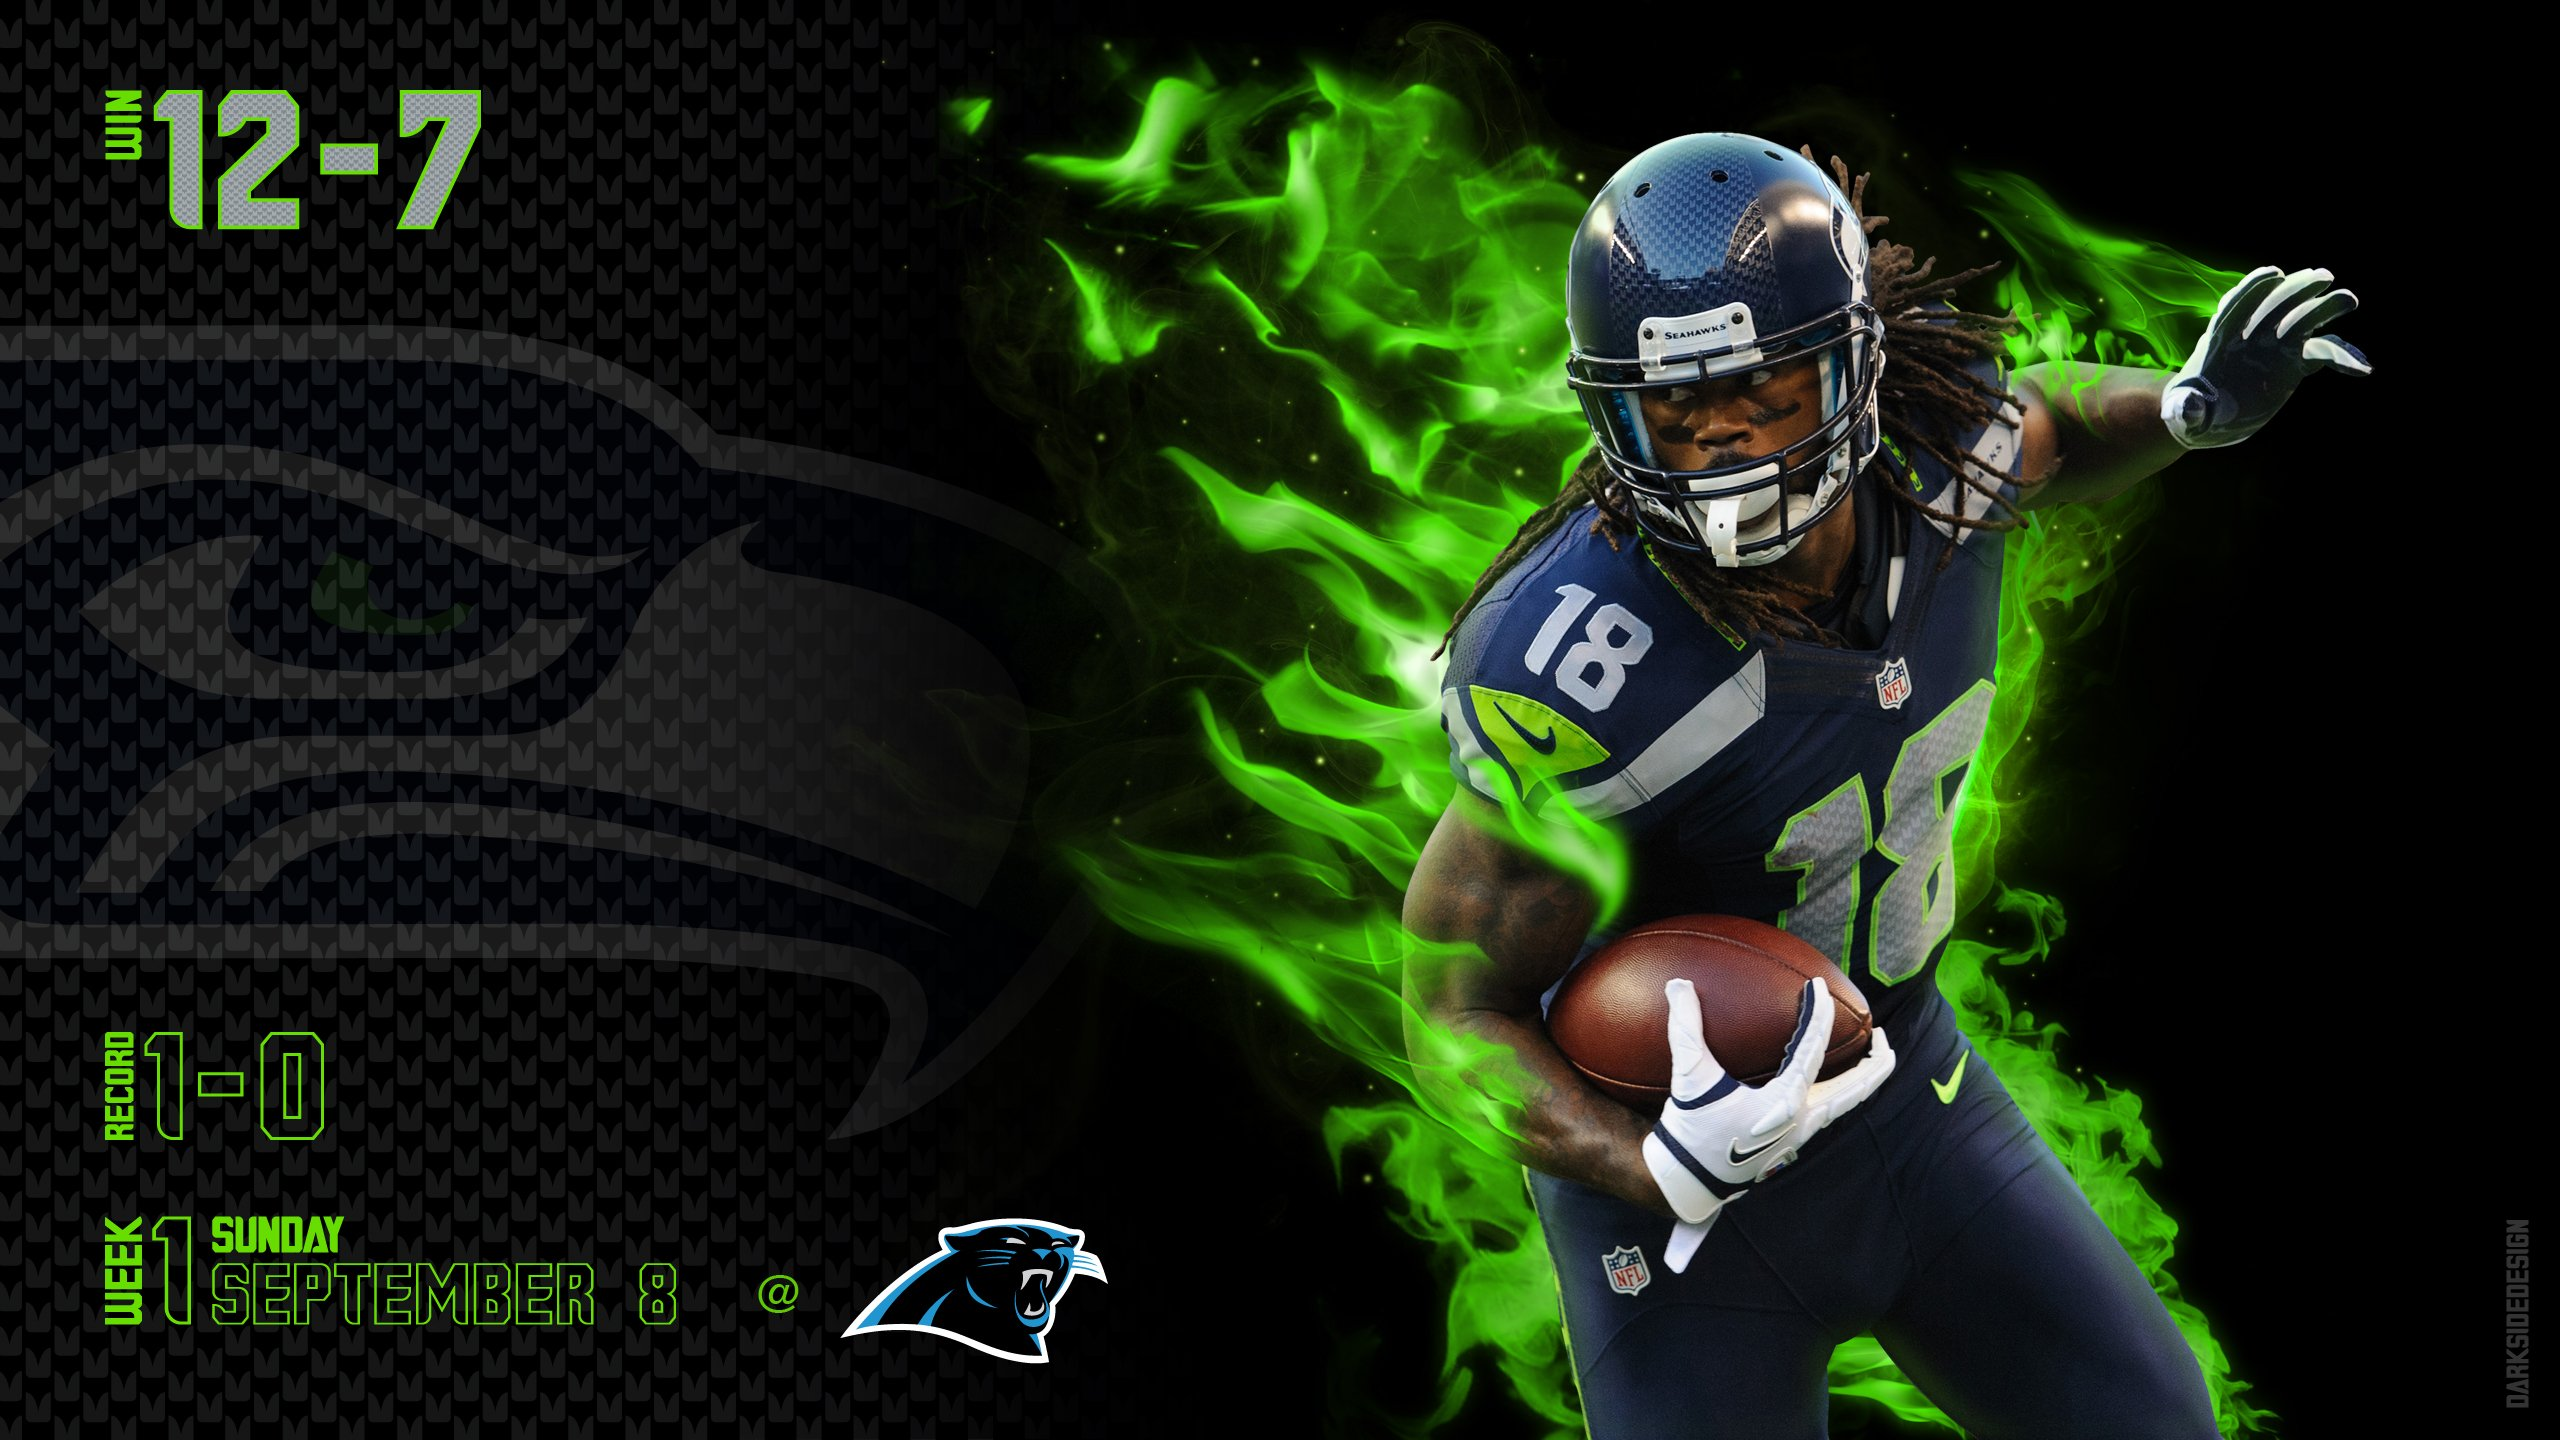 cool nfl players wallpapers wallpapersafari